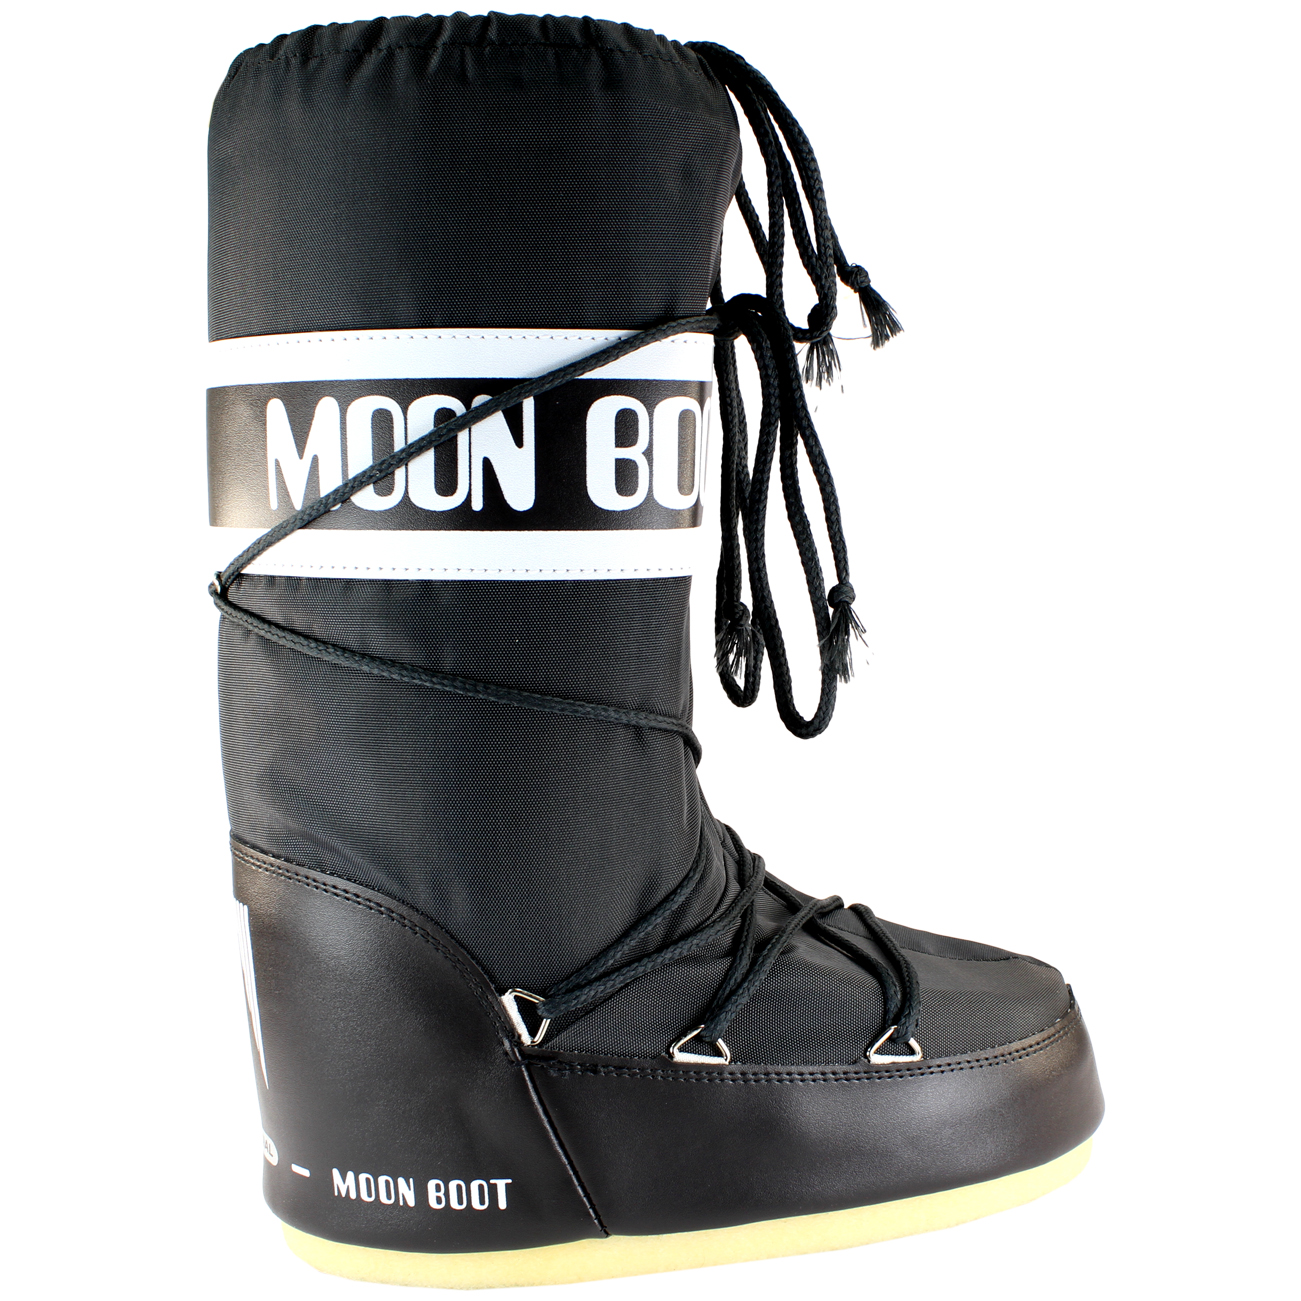 Mens Tecnica Moon Boot Nylon Mid Calf Waterproof Winter